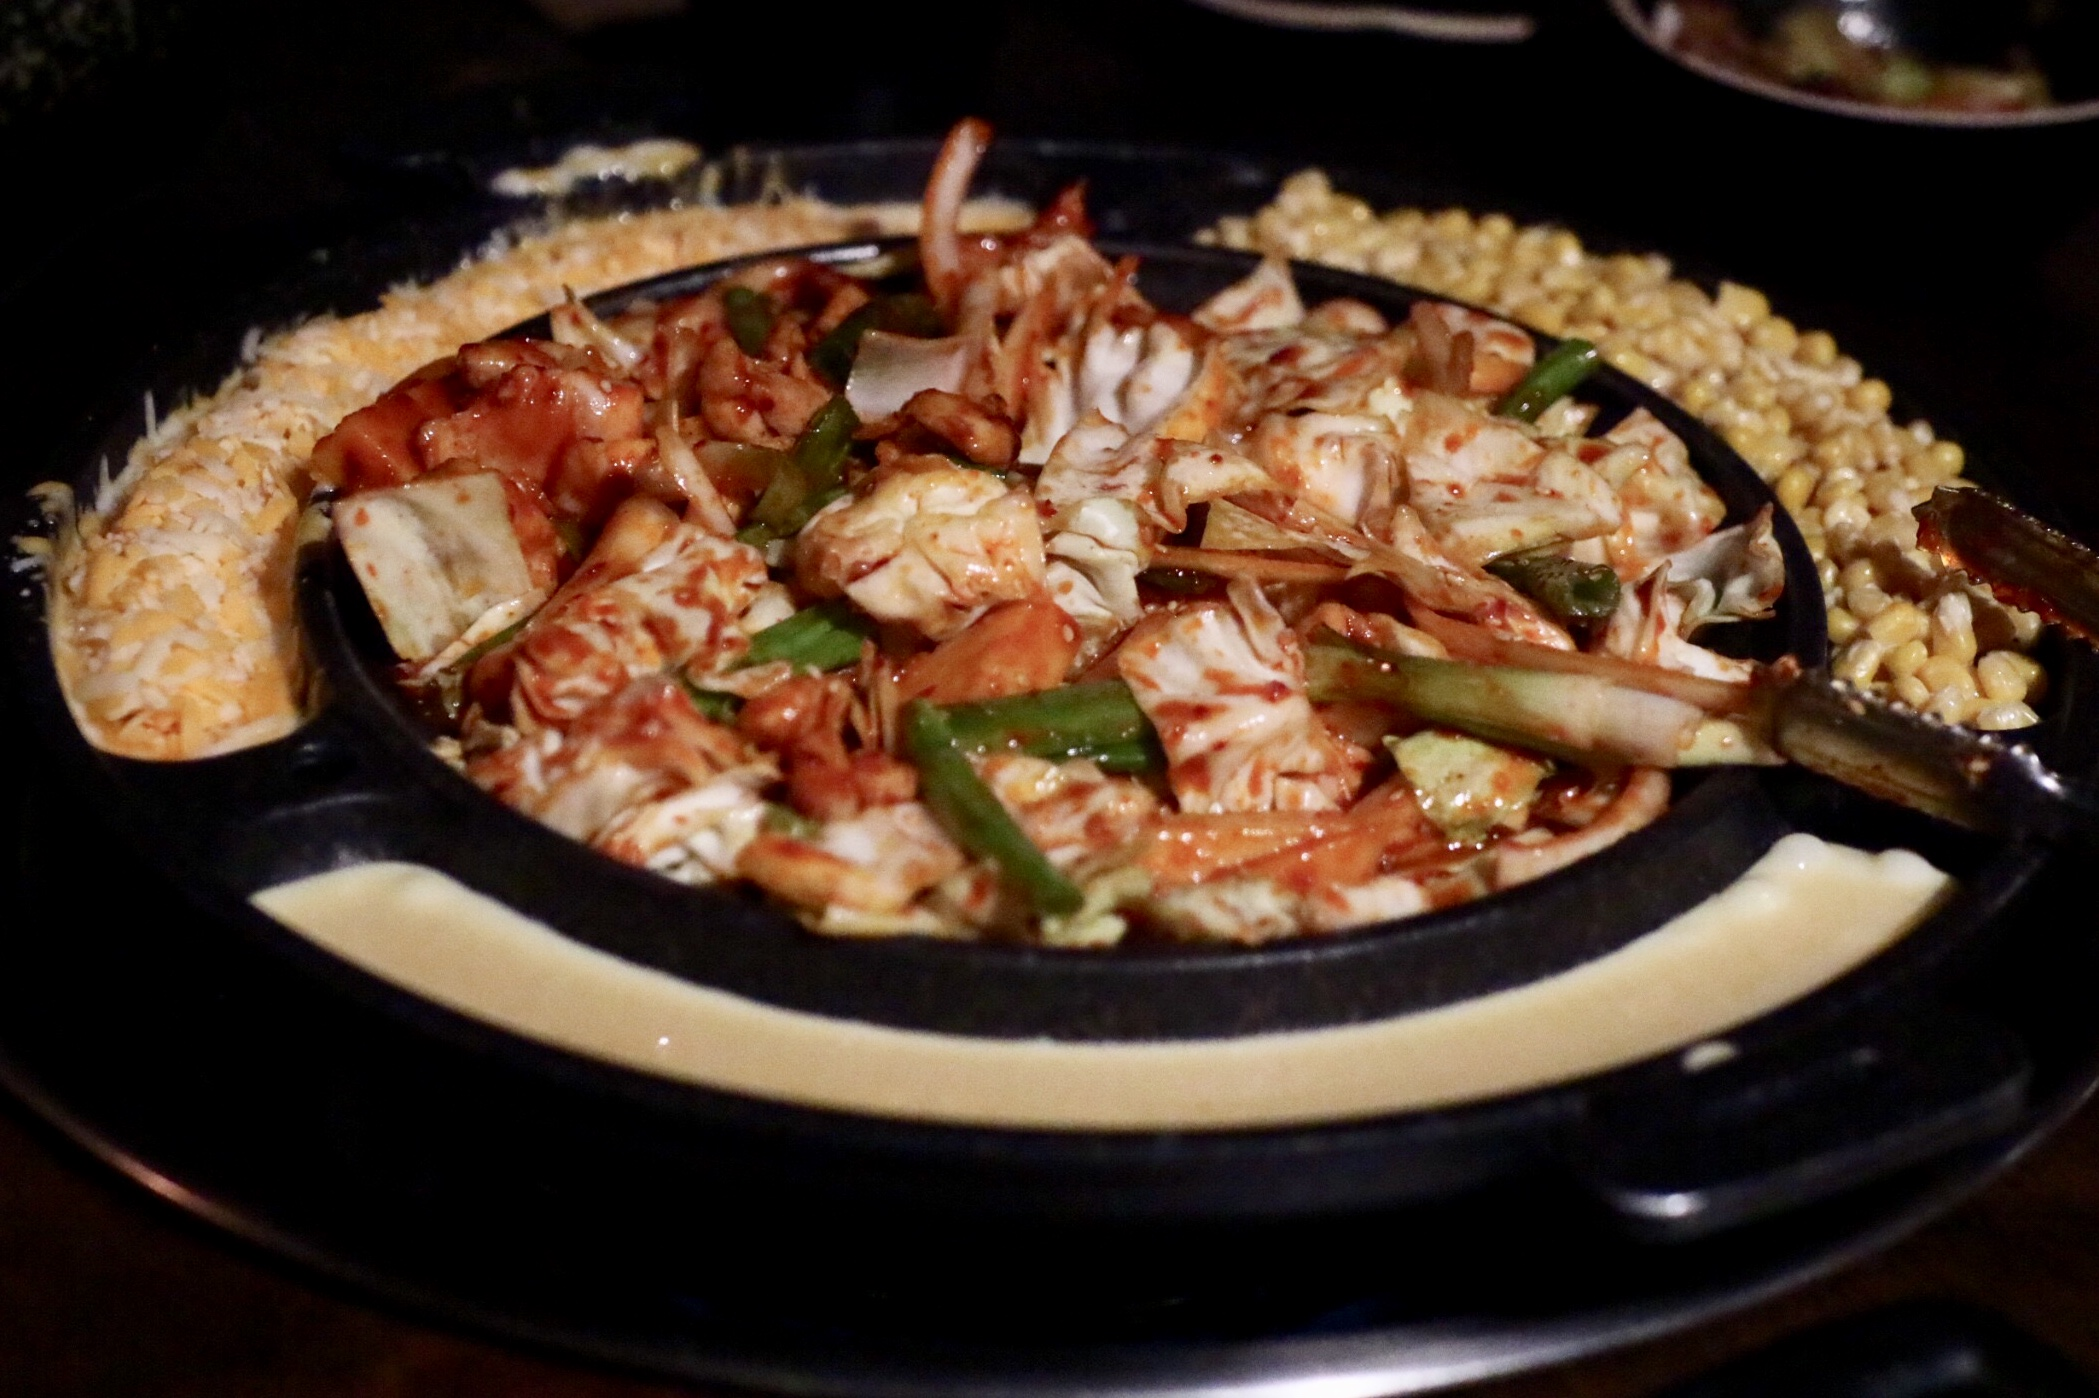 Korean Hot Plate with Spicy Chicken + Cheese